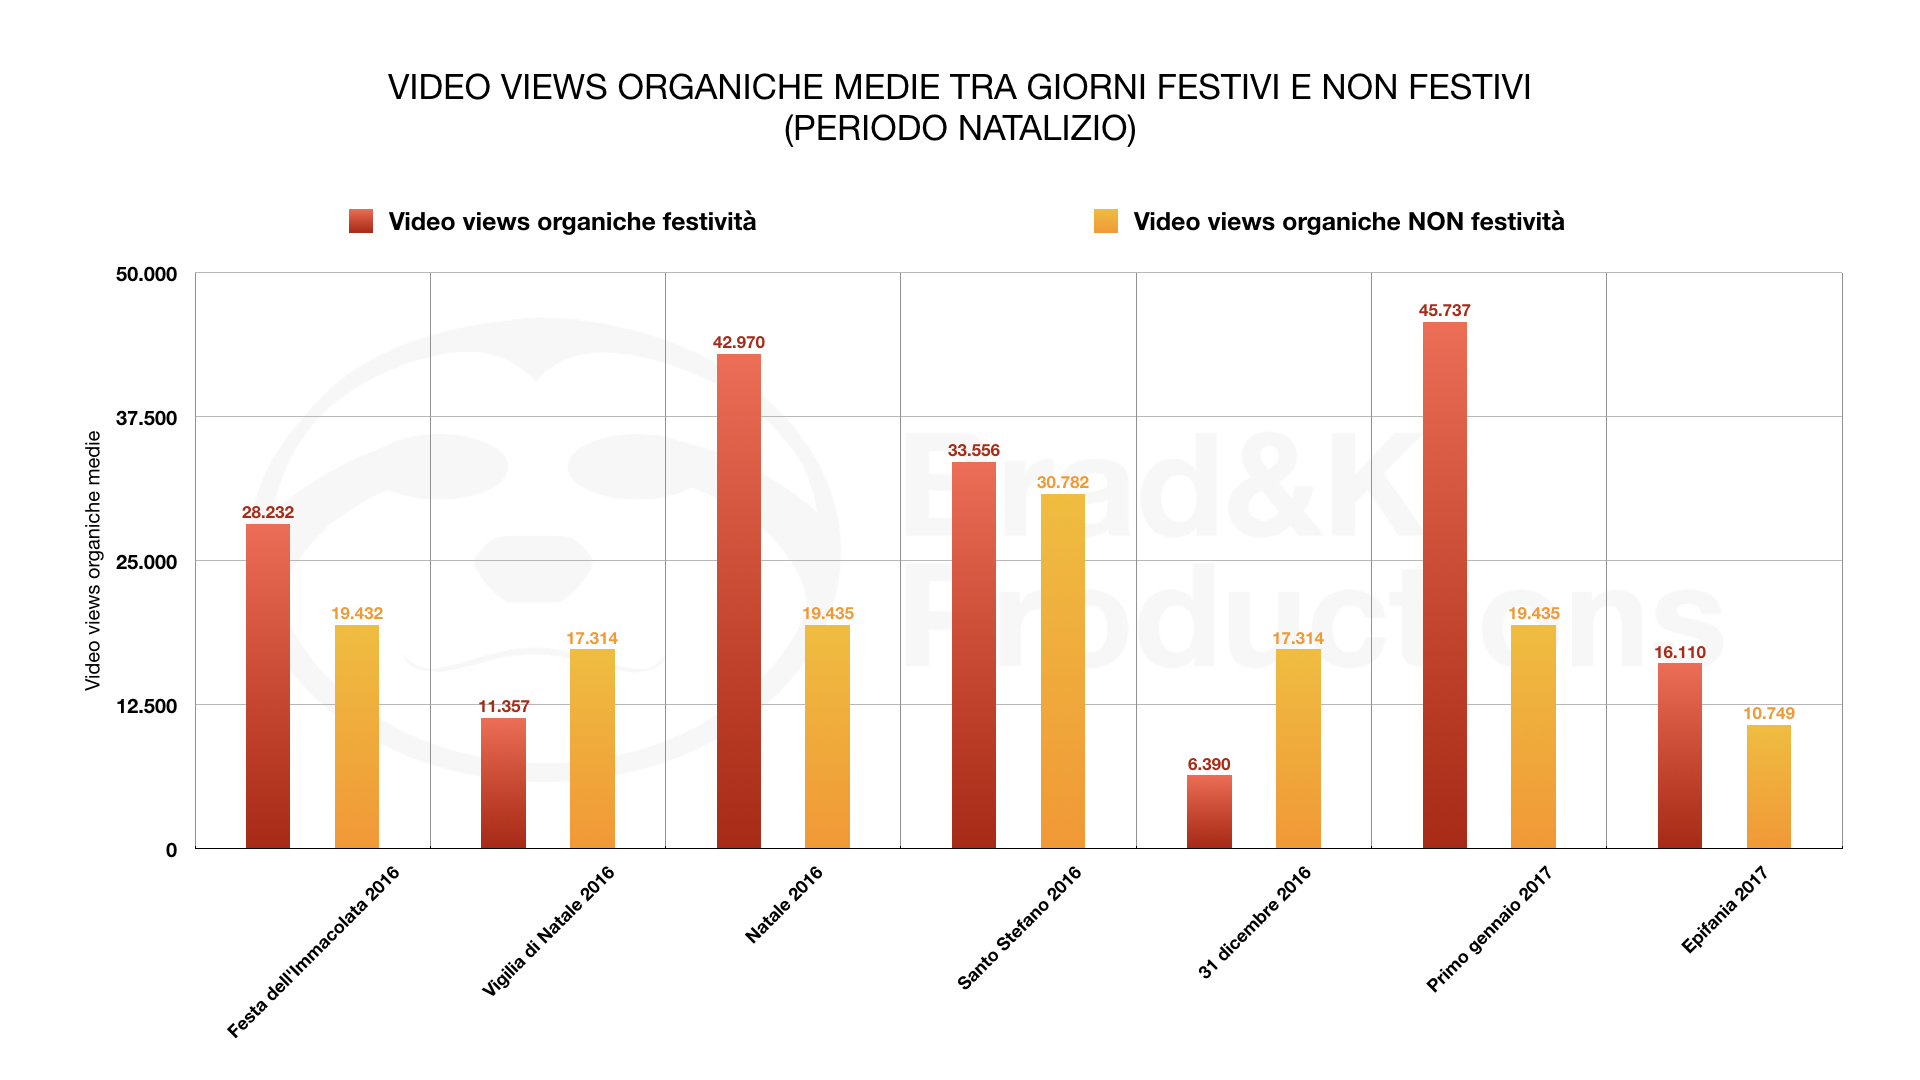 VIDEO VIEWS ORGANIC MEDIUM BETWEEN PUBLIC HOLIDAYS AND PUBLIC HOLIDAYS(CHRISTMAS TIME)